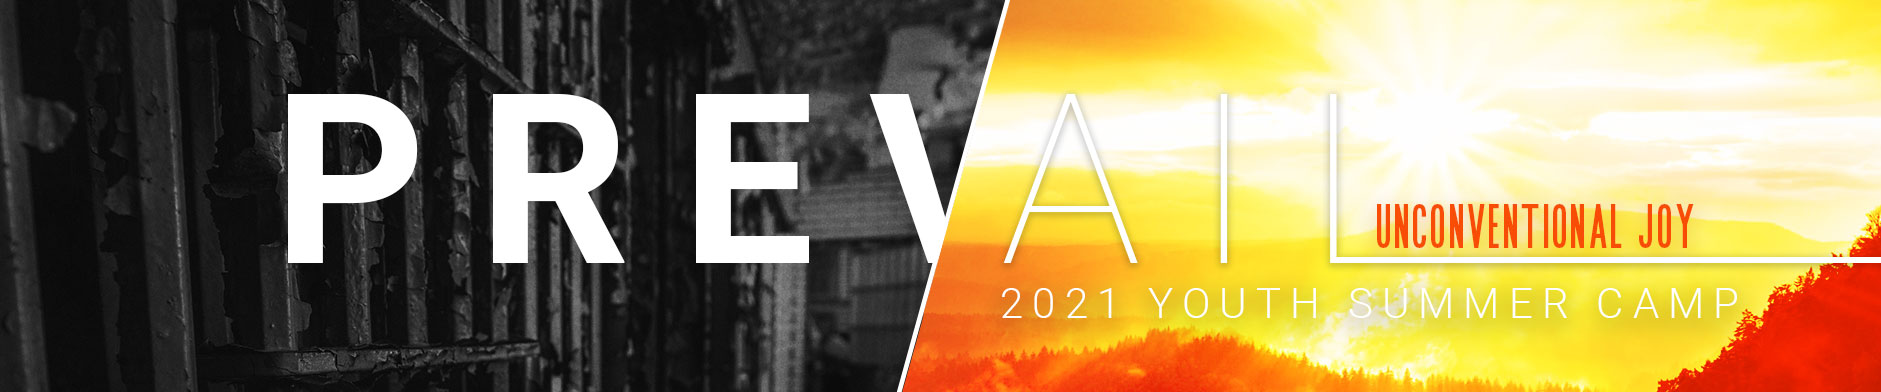 angeles crest youth camp summer 2021 theme prevail